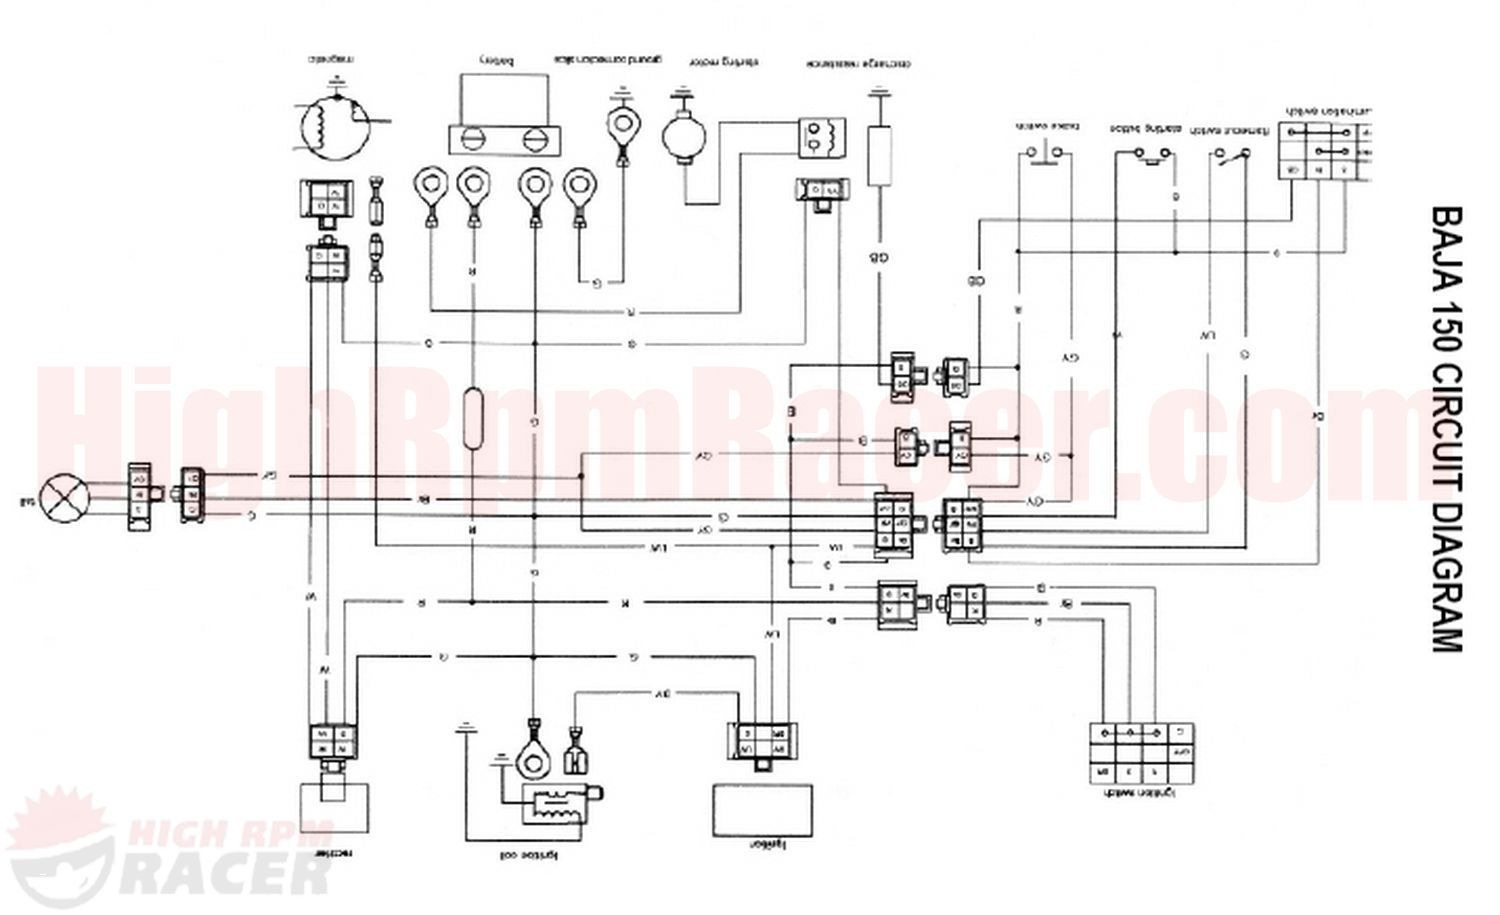 wiring diagram for 110cc 4 wheeler Collection-chinese atv wiring diagram Download 110cc Chinese atv Wiring Diagram Inspirational Outstanding Wiring Diagram for 6-g